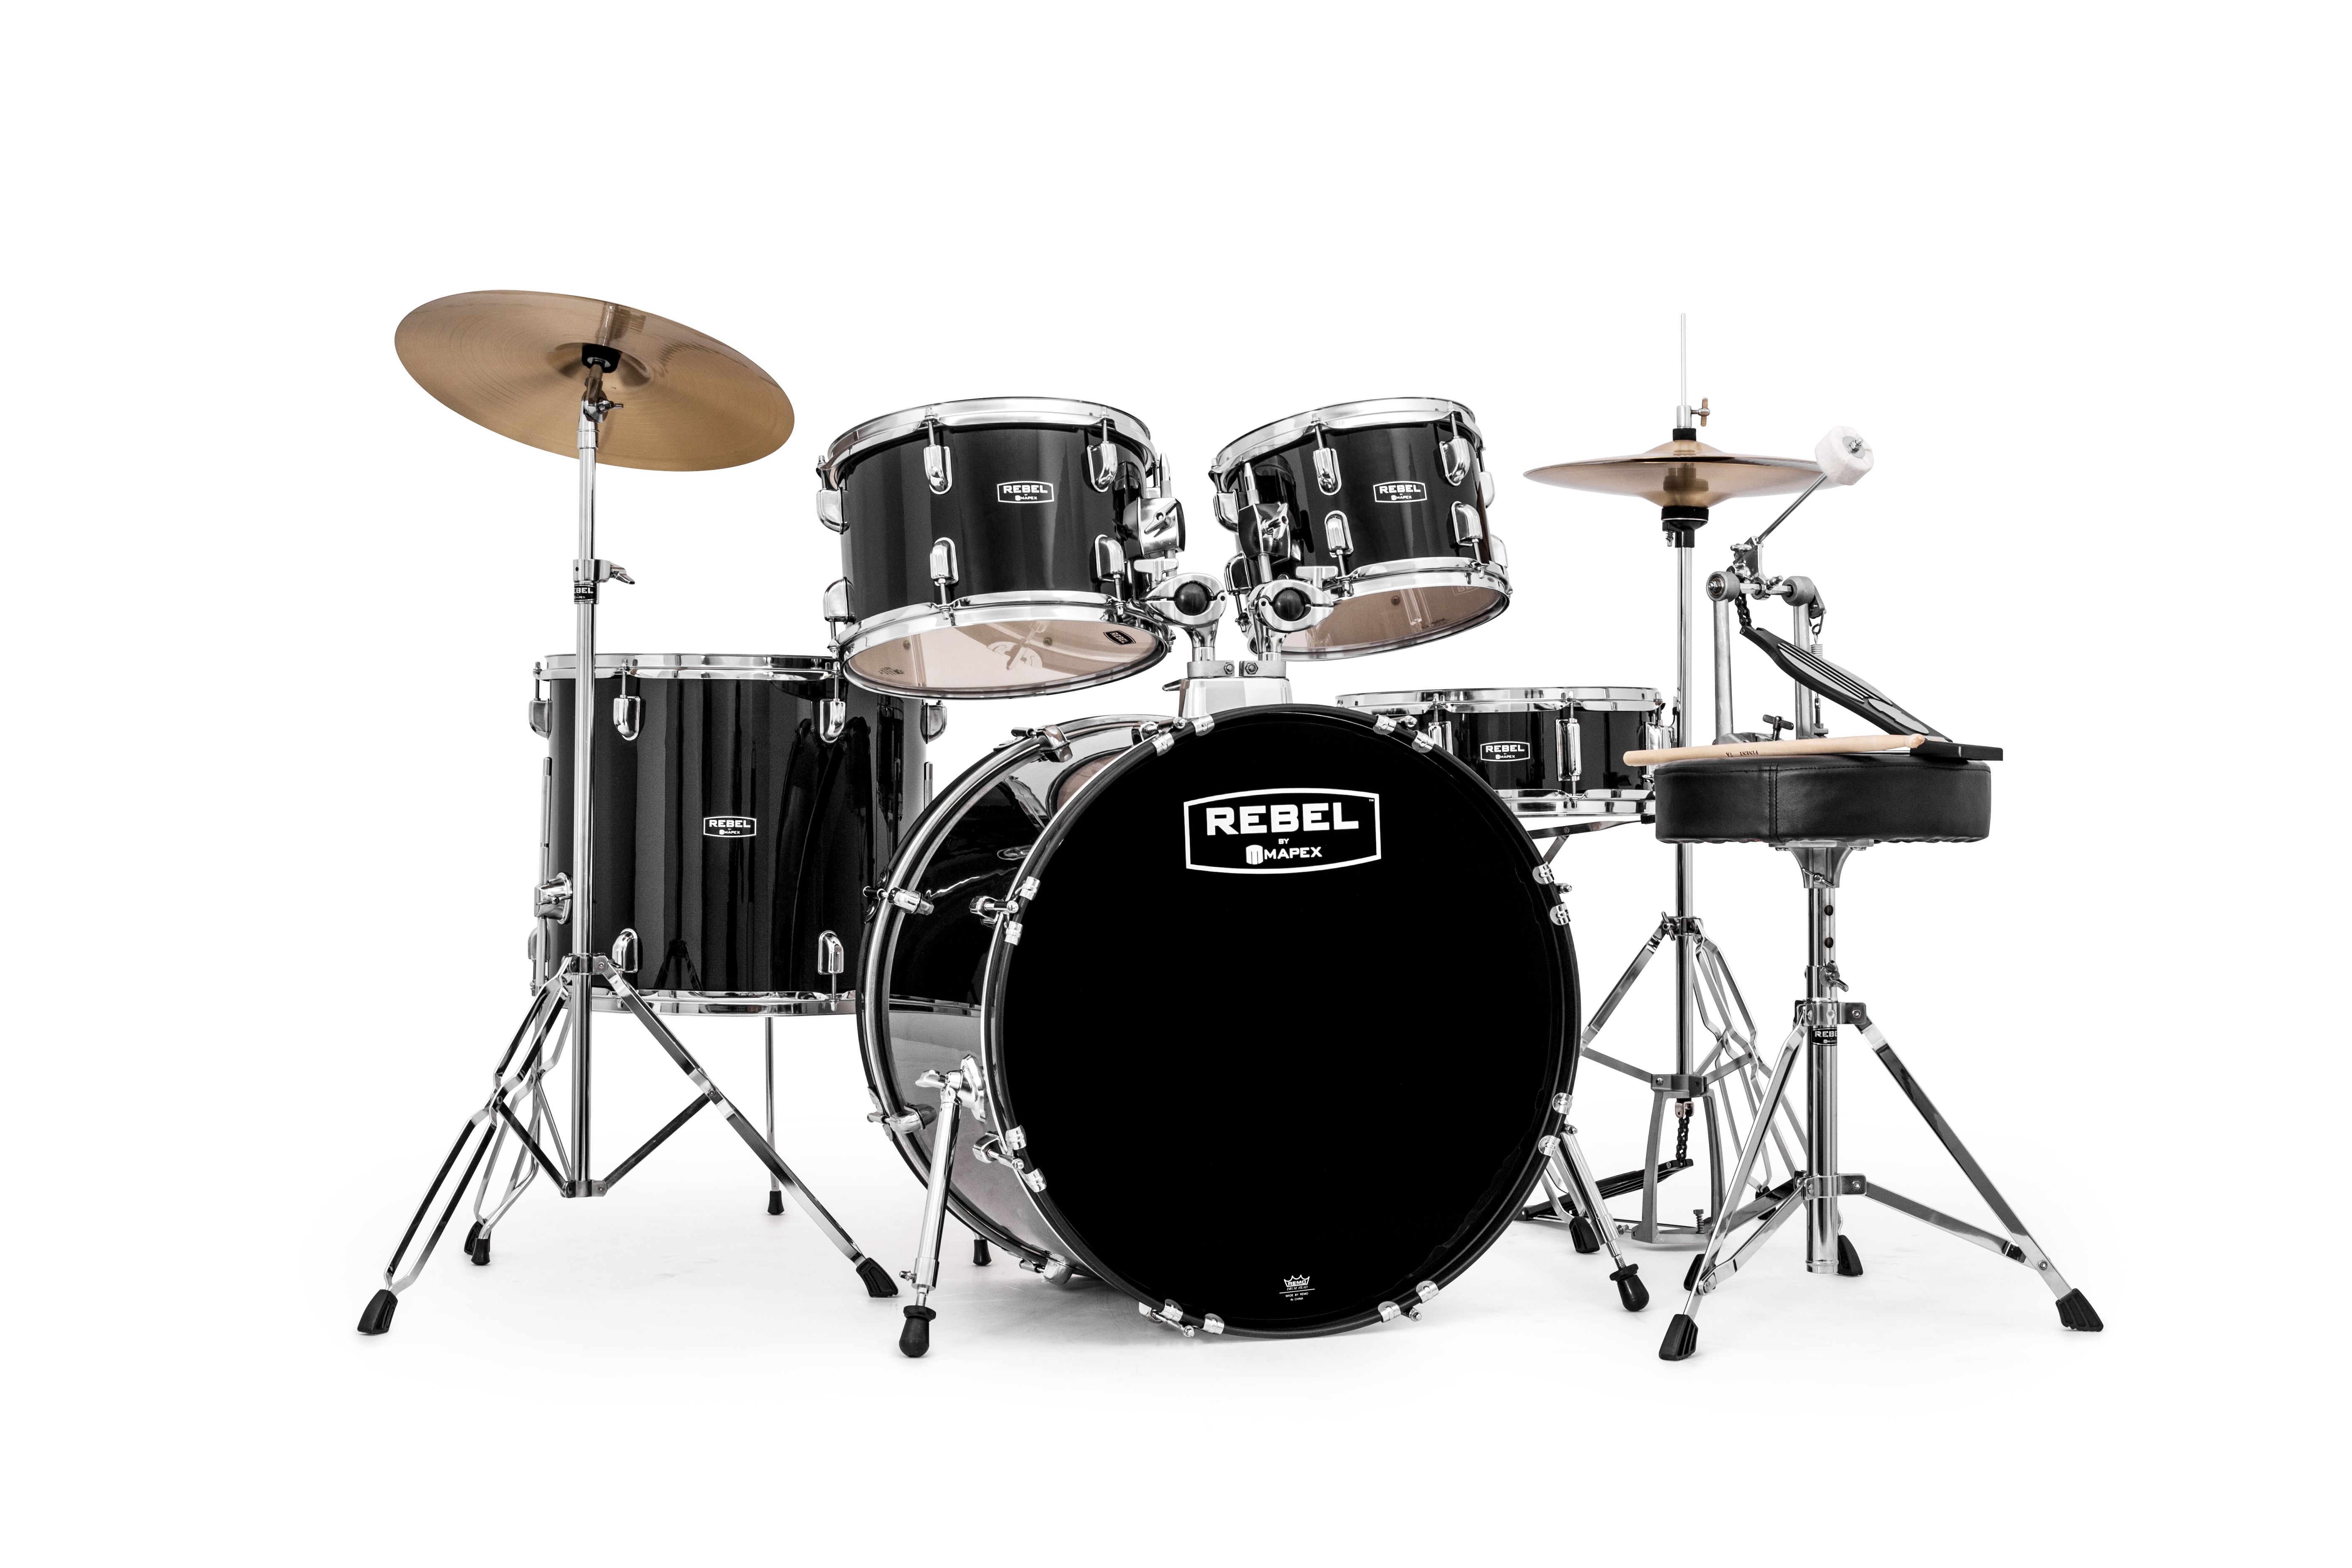 Mapex Rebel 5-piece SRO Complete Set Up with Fast Size Toms - RB5294FTCDK - Dark Black